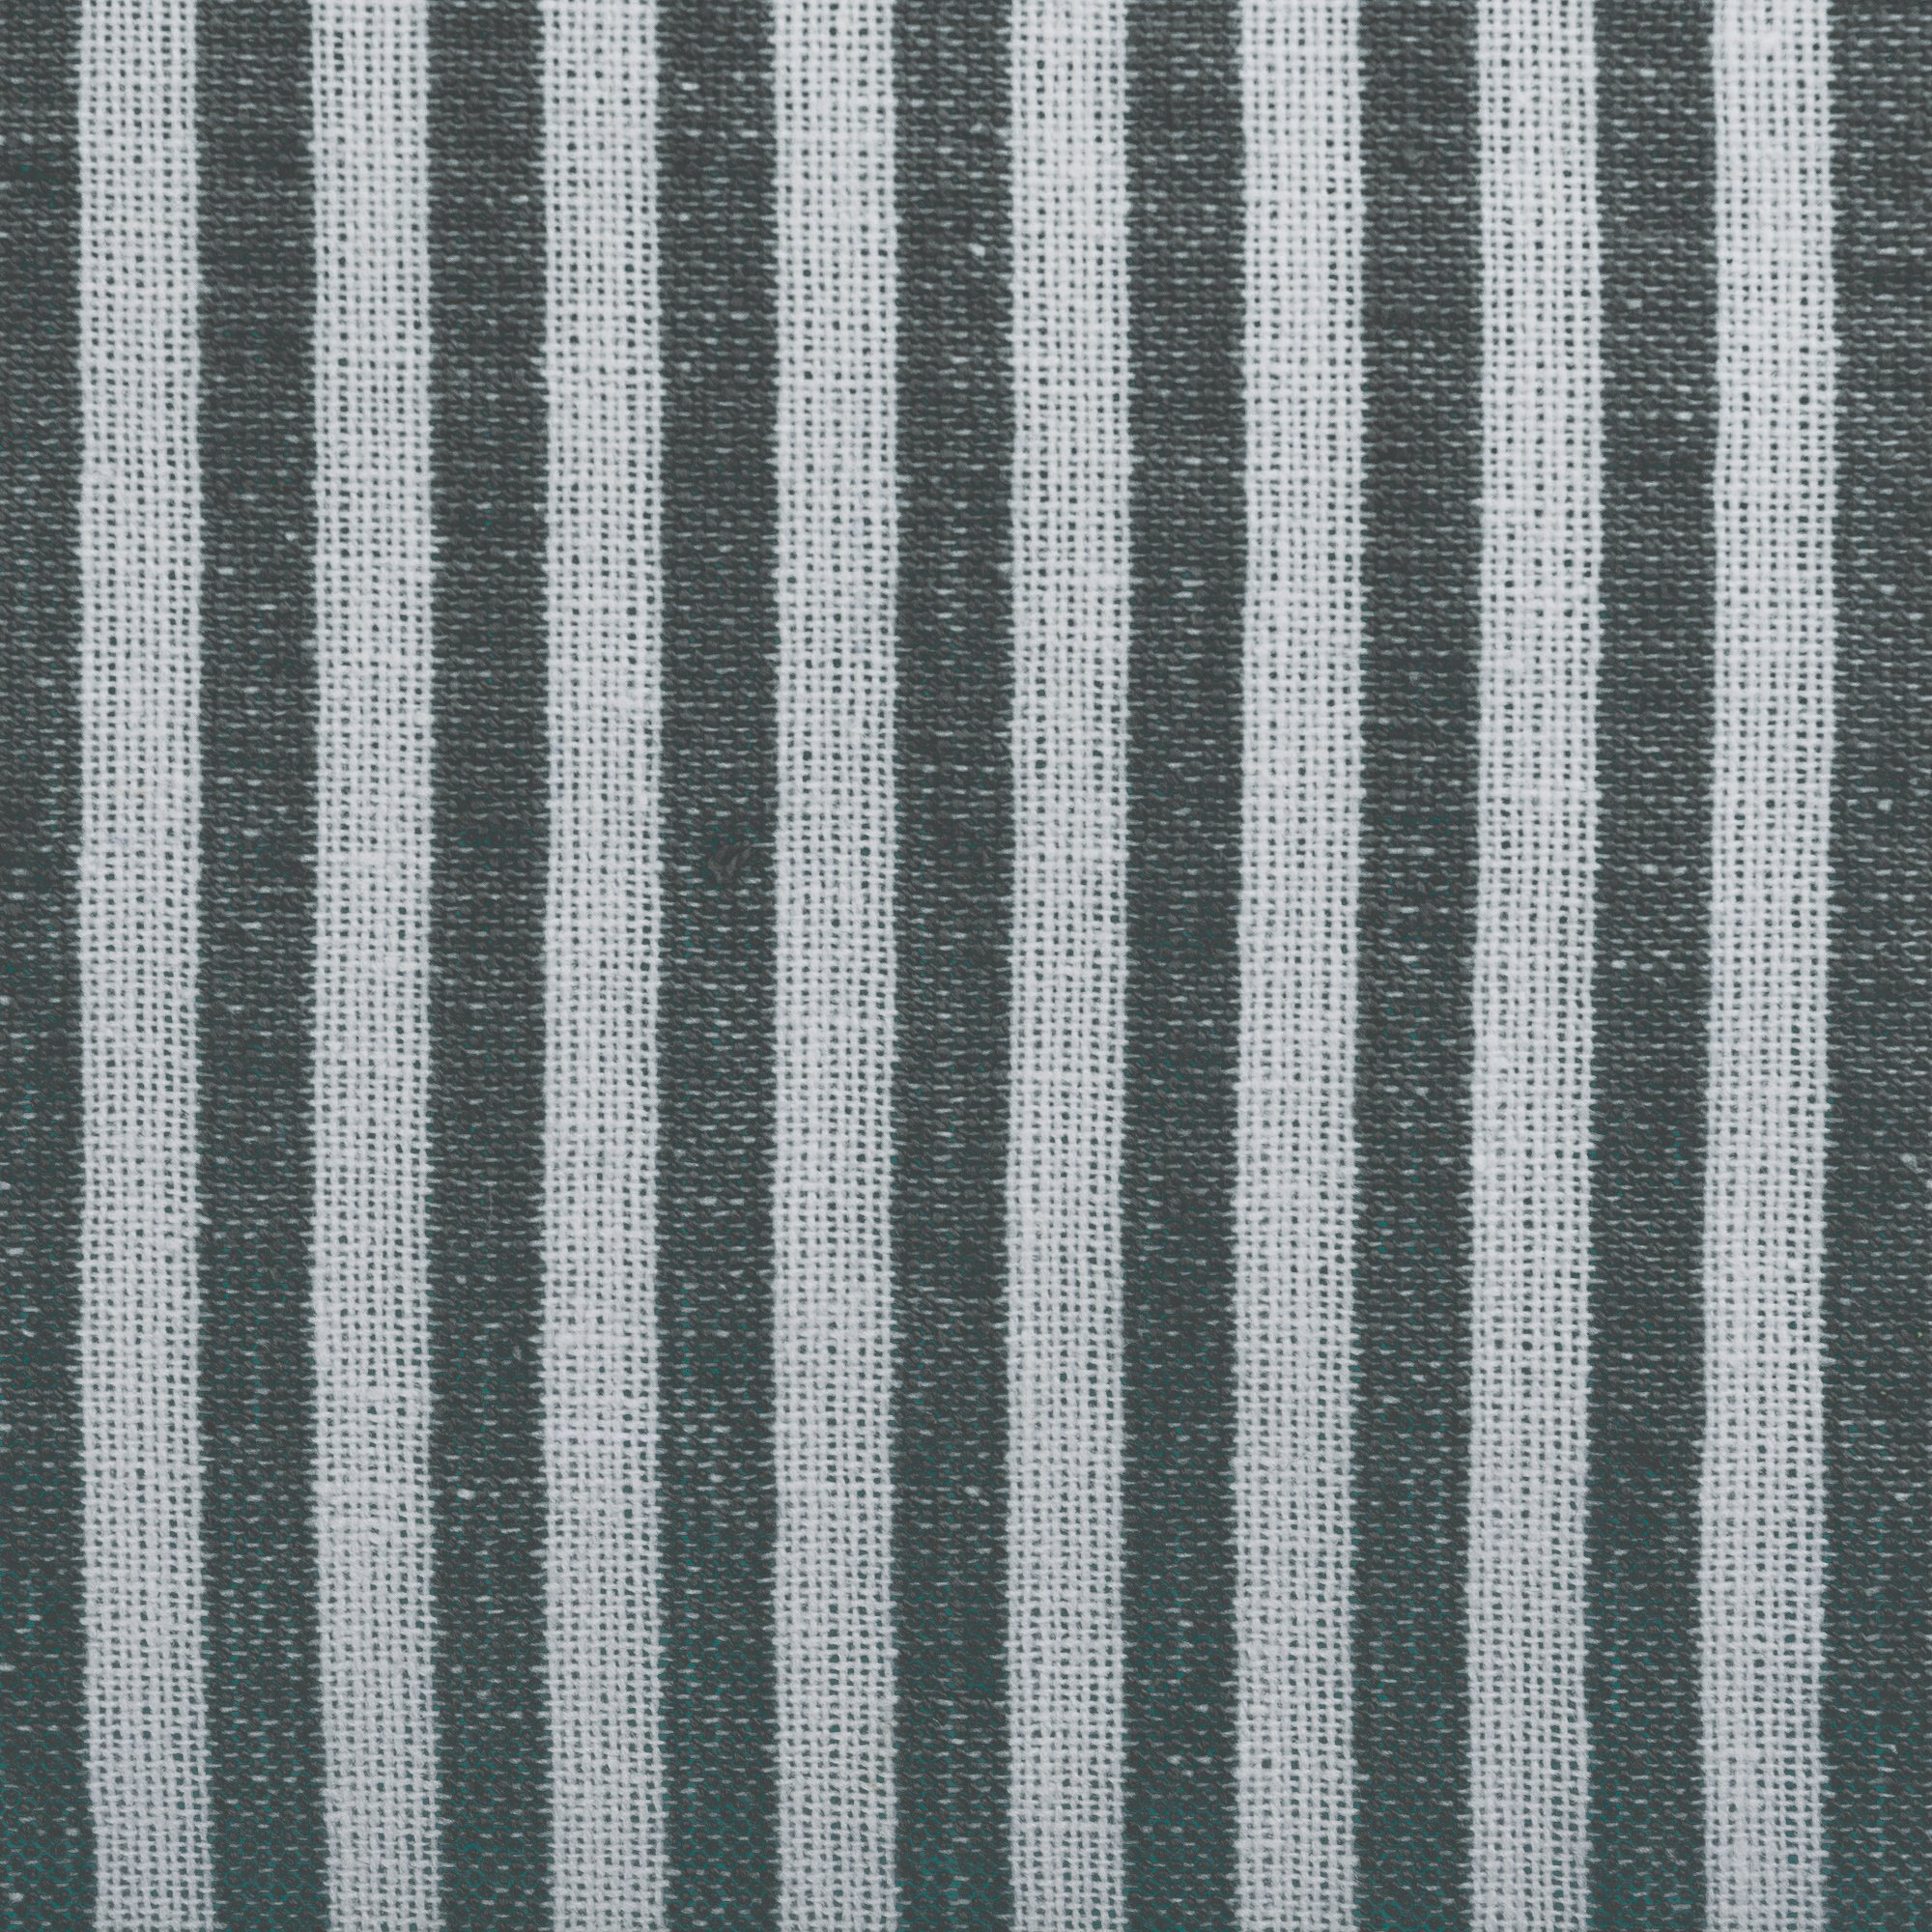 DII Cotton Seersucker Striped Napkin for Brunch, Weddings, Showers, Parties and Everyday Use, 20 x 20'', Mineral Gray and White by DII (Image #2)